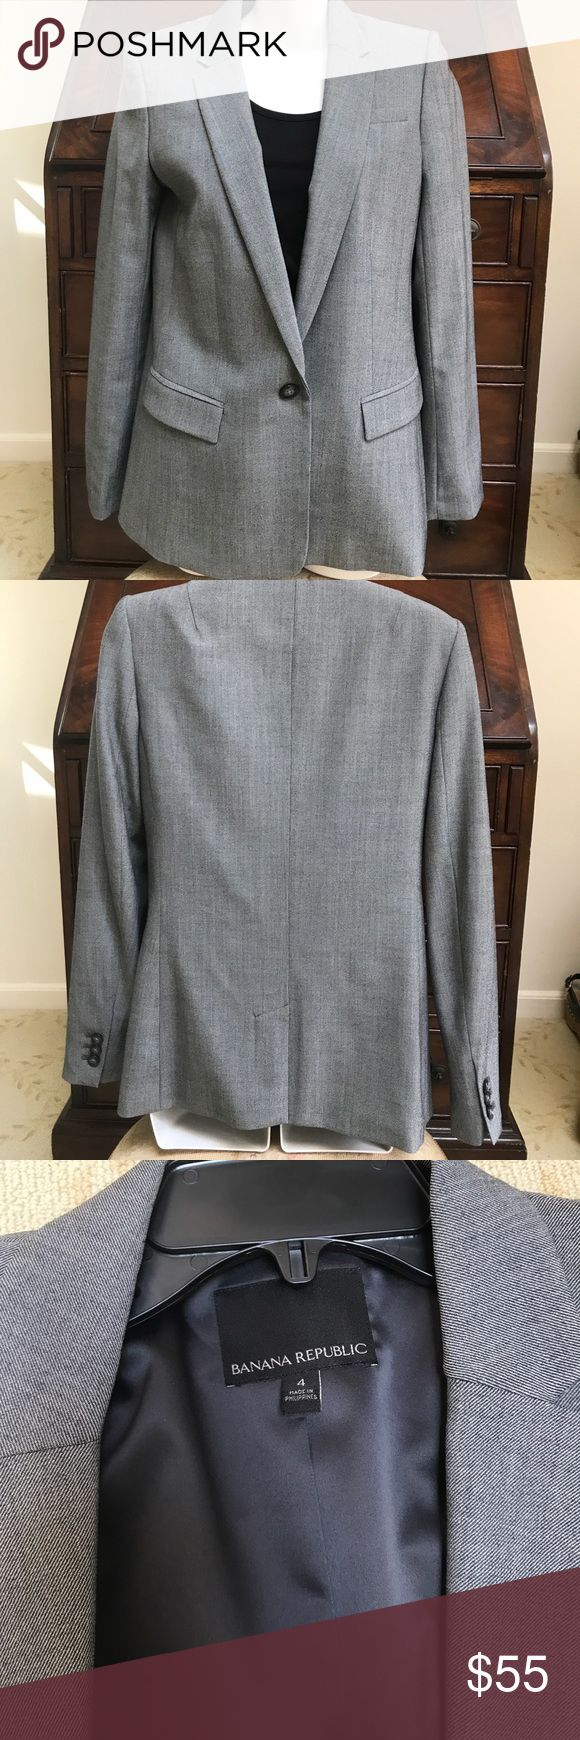 BANANA REPUBLIC BLAZER Worn 1x. Beautiful grey one button blazer. Dry clean only. Can dress up or with t shirt & jeans. Wool, spandex, elastane. Lining poly,spandex. Just don't wear  blazers that much anymore. Great going into fall & winter. Neutral color Banana Republic Jackets & Coats Blazers